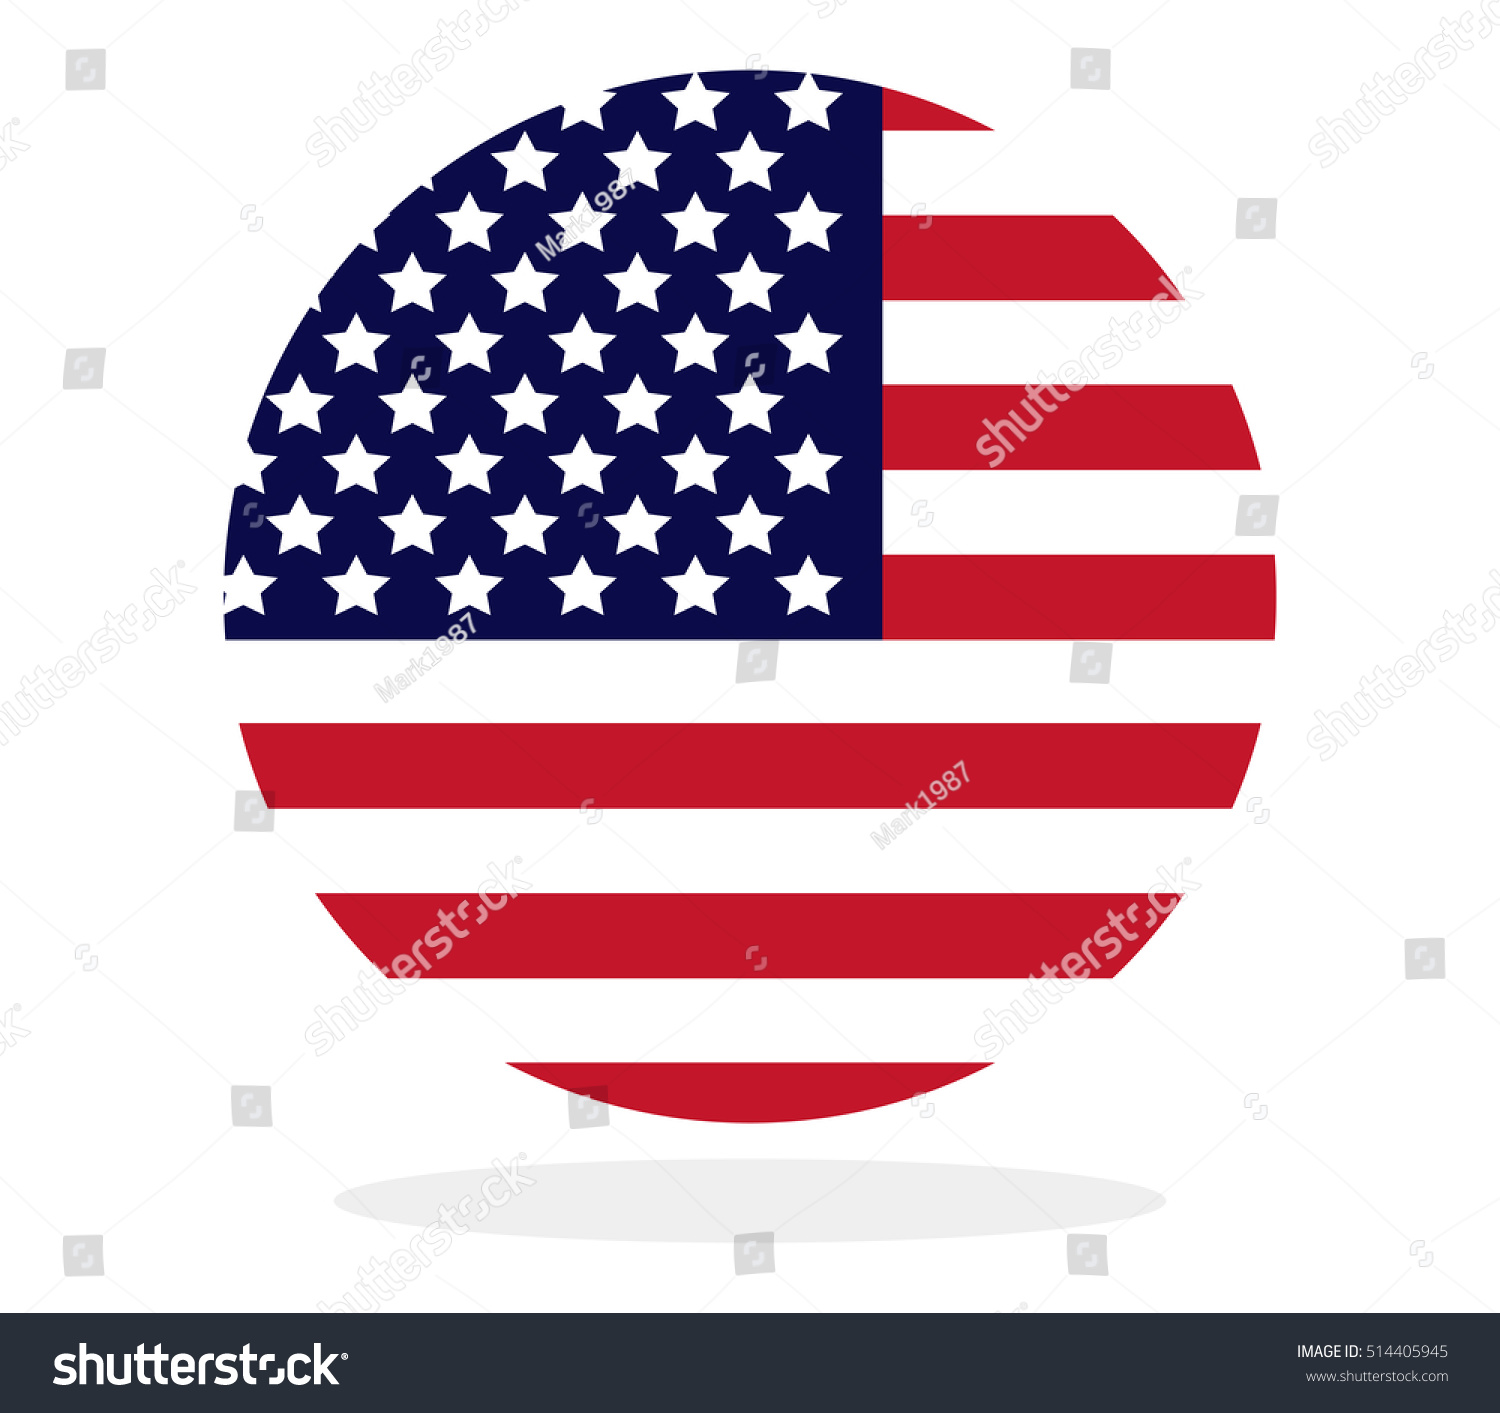 us flag shape circle stock vector 514405945 shutterstock rh shutterstock com us flag graphic images us flag vector graphic